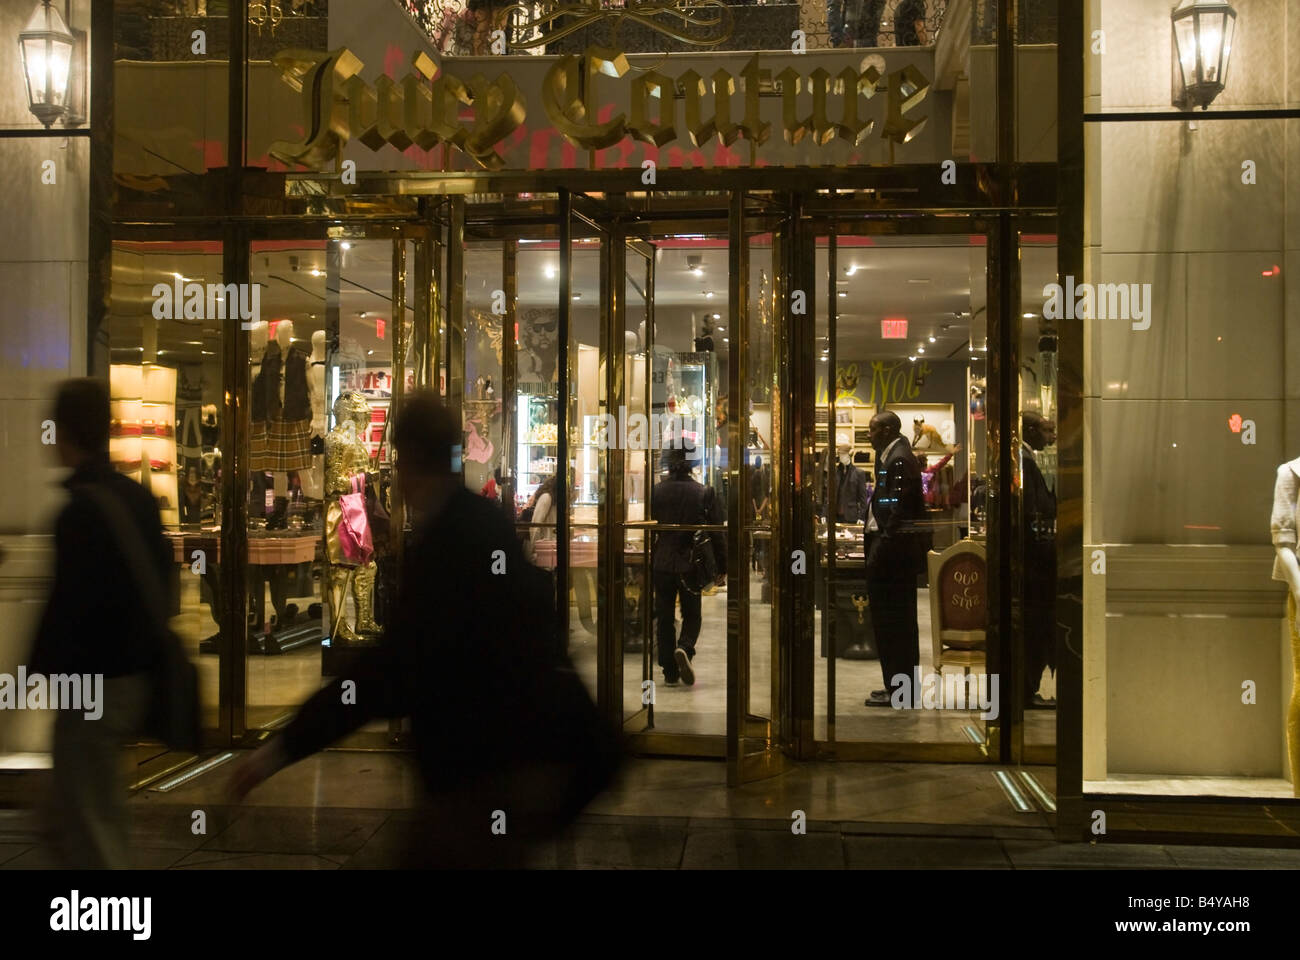 The entrance to the Juicy Couture store on Fifth Avenue in Midtown Manhattan in New York - Stock Image